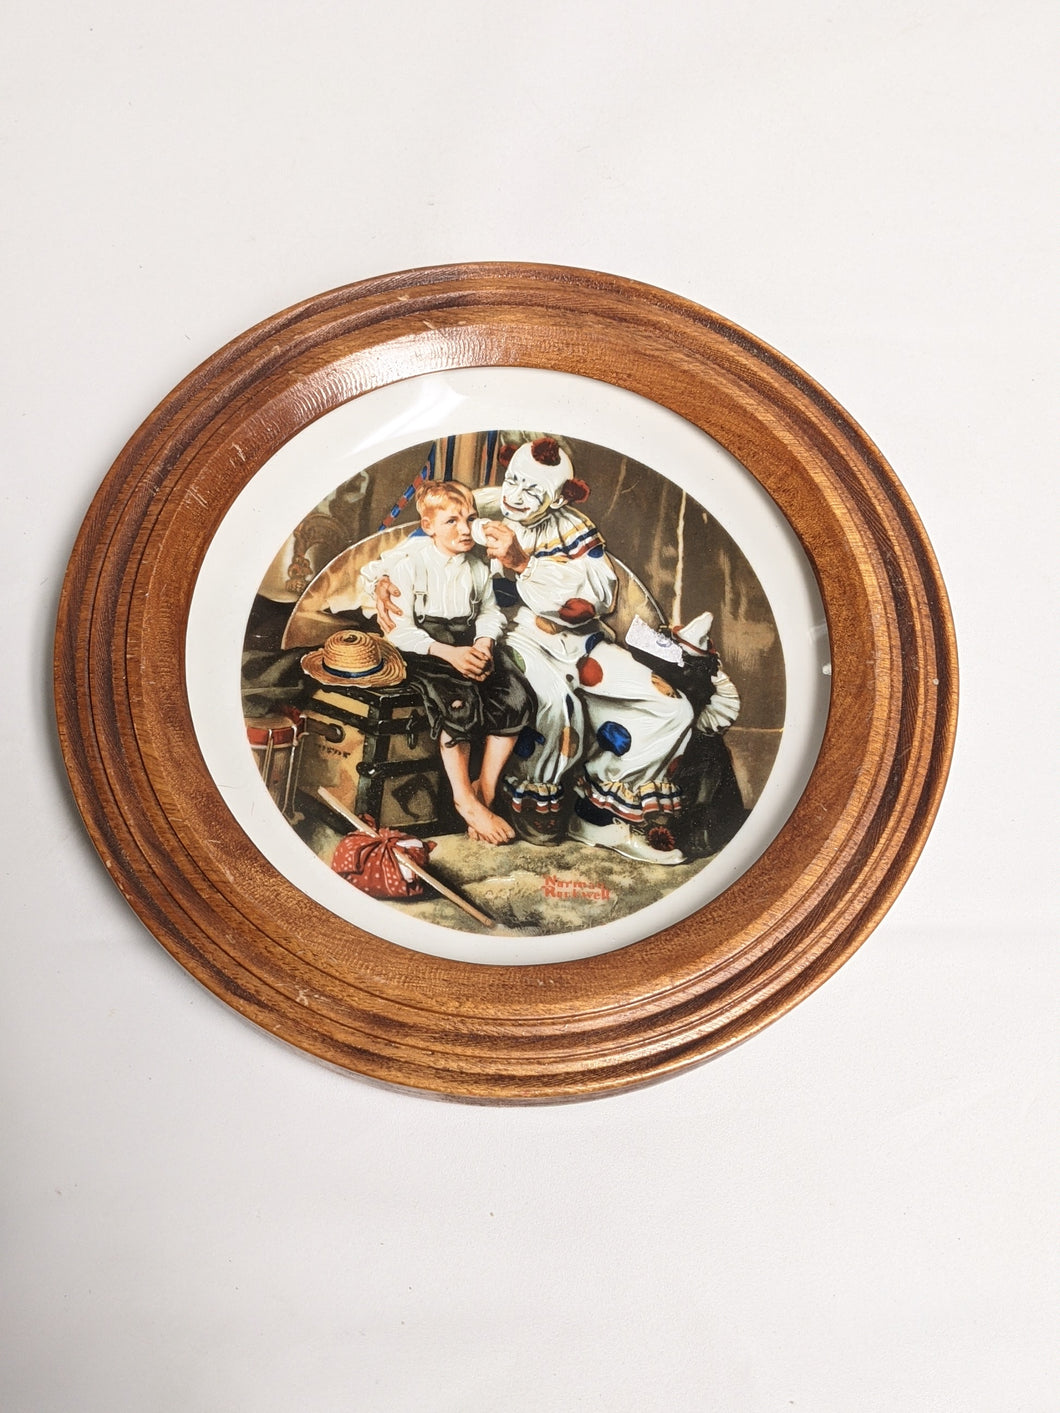 1984 NORMAN ROCKWELL Clown And Child Small PLATE The Runaway